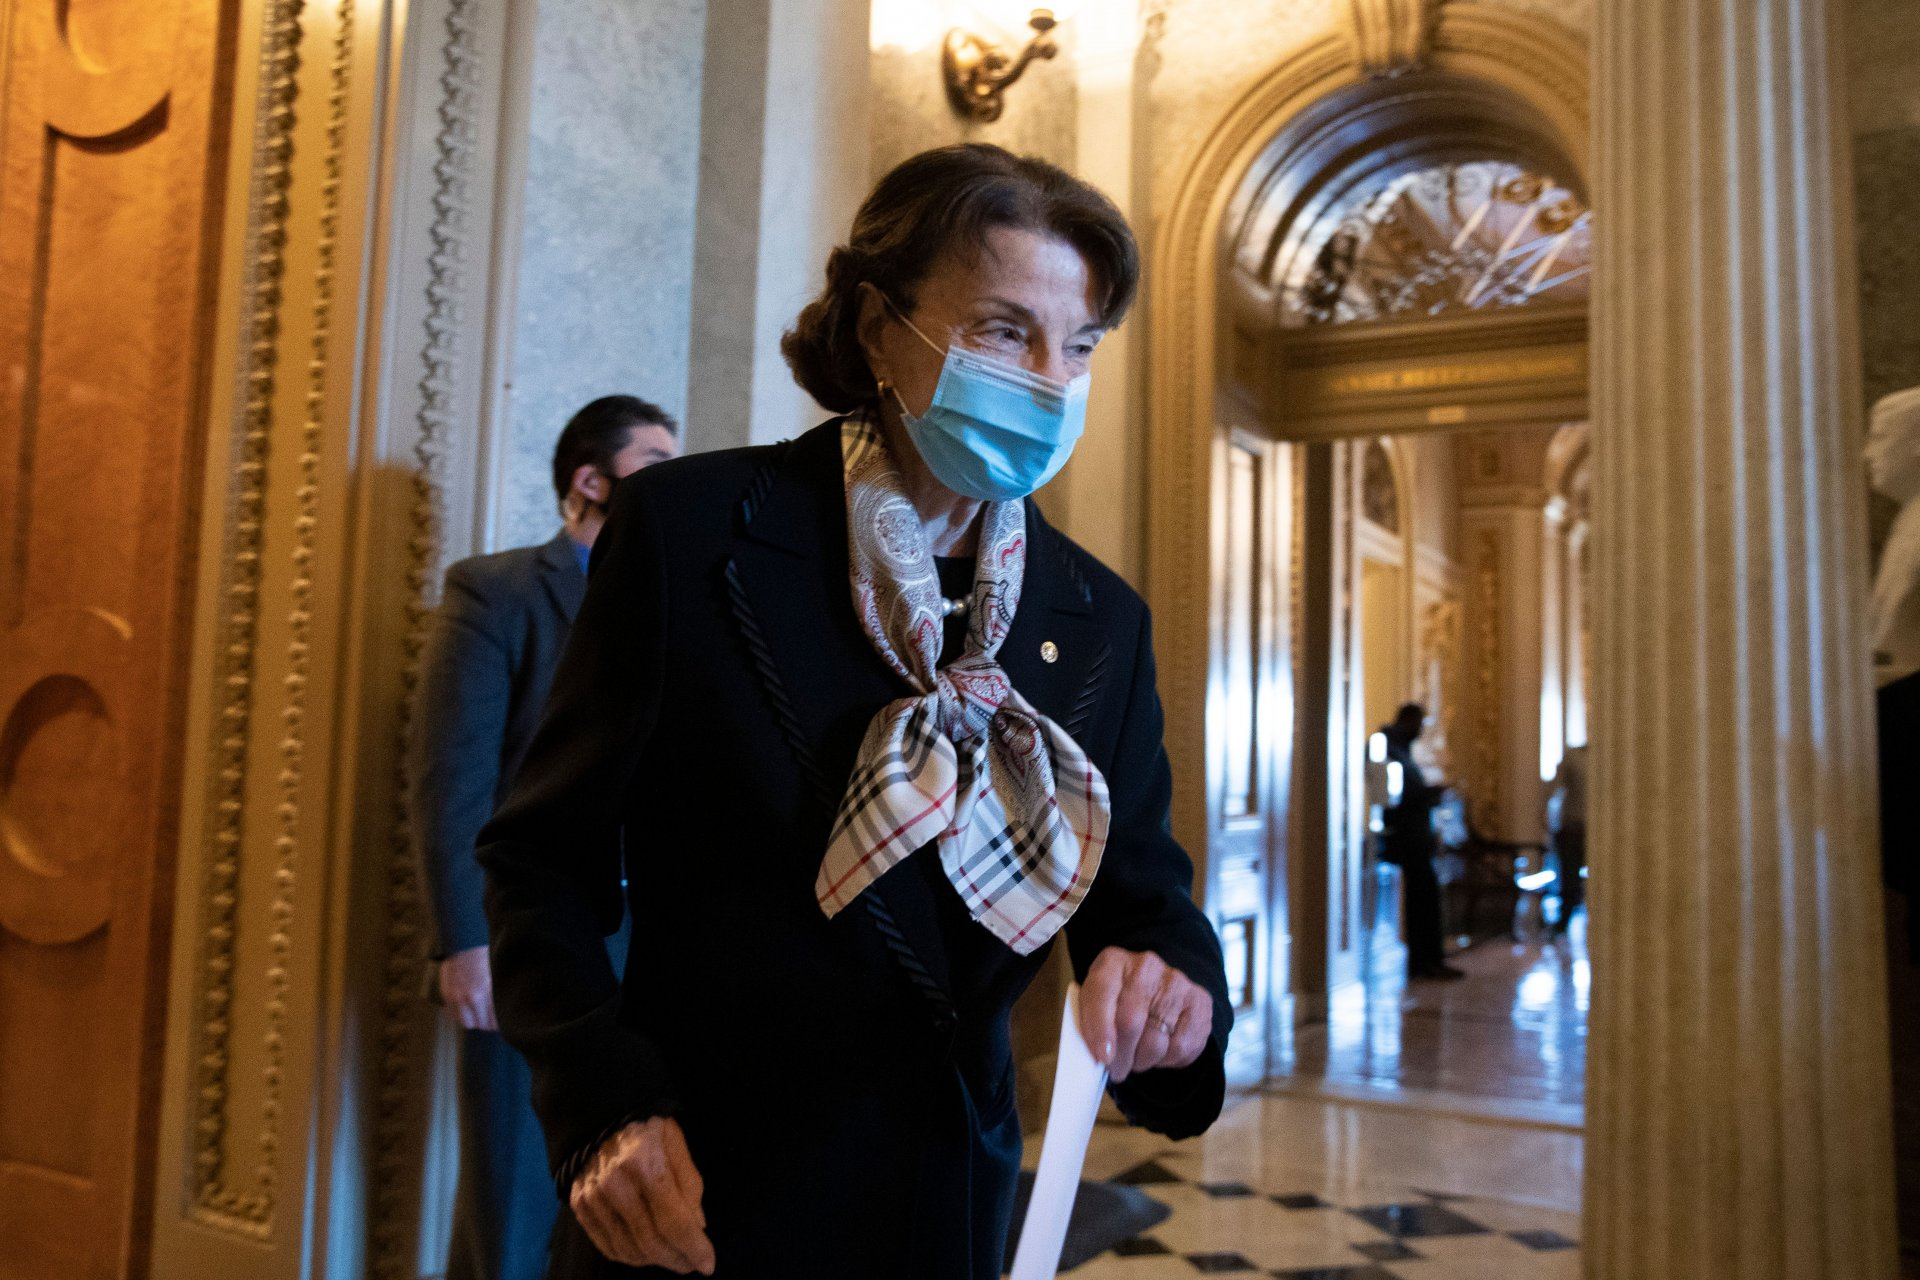 Mandatory Credit: Photo by MICHAEL REYNOLDS/EPA-EFE/Shutterstock (11574686r)Democratic Senator from California Dianne Feinstein walks from the Senate floor on Capitol Hill in Washington, DC, USA, 17 December 2020.